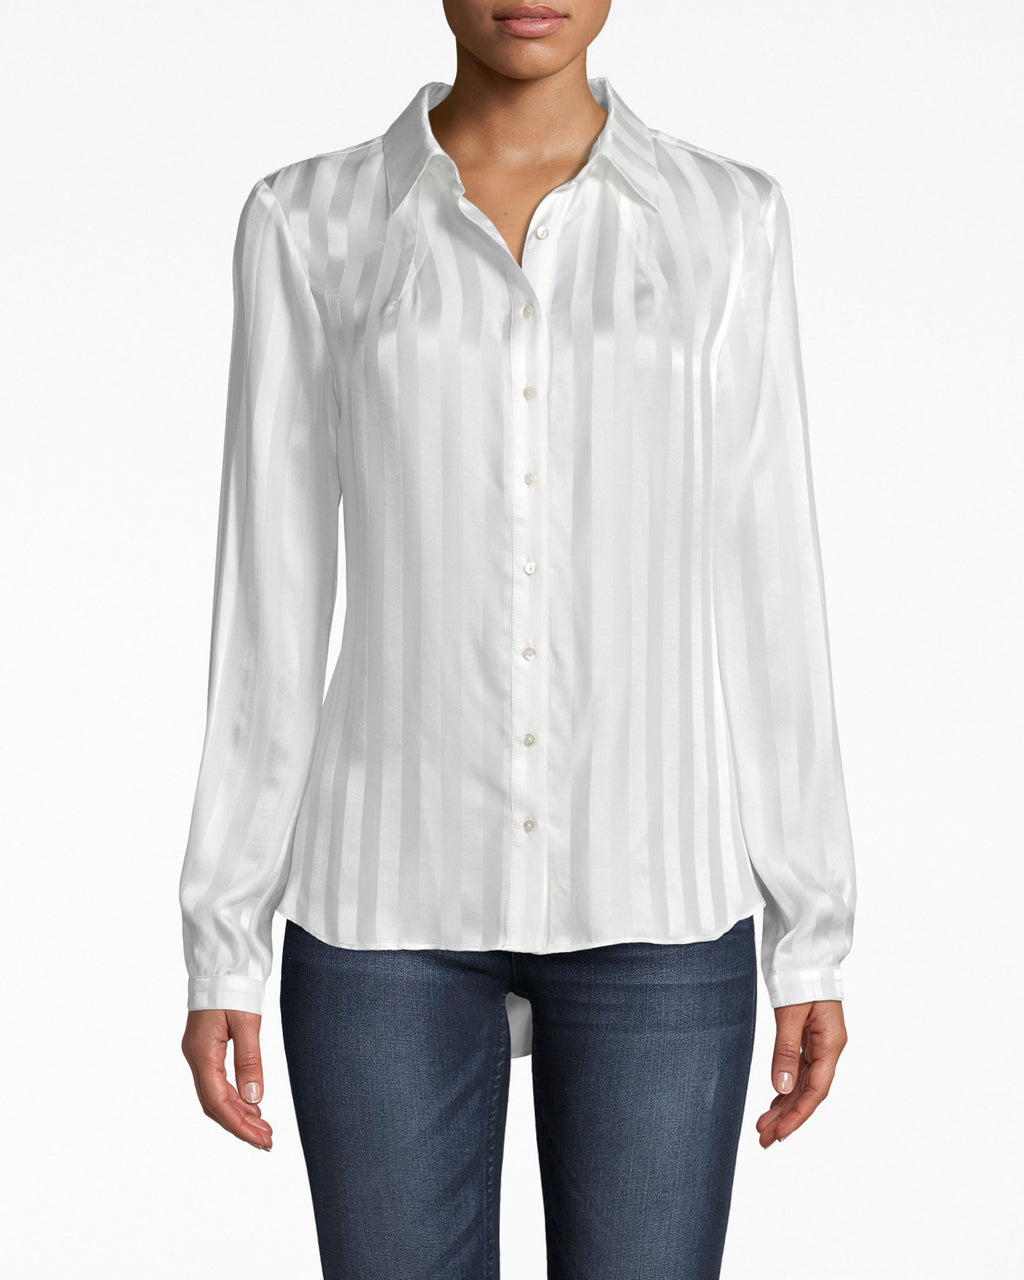 BI10161 - SATIN STRIPE BOYFRIEND BLOUSE - tops - blouses - SATIN AND STRIPES PUT A FUN TWIST ON THIS CLASSIC BOYFRIEND BLOUSE. WEAR UNDER A BLAZER OR SIMPLY WEAR SOLO. FRONT BUTTONS FOR CLOSURE.